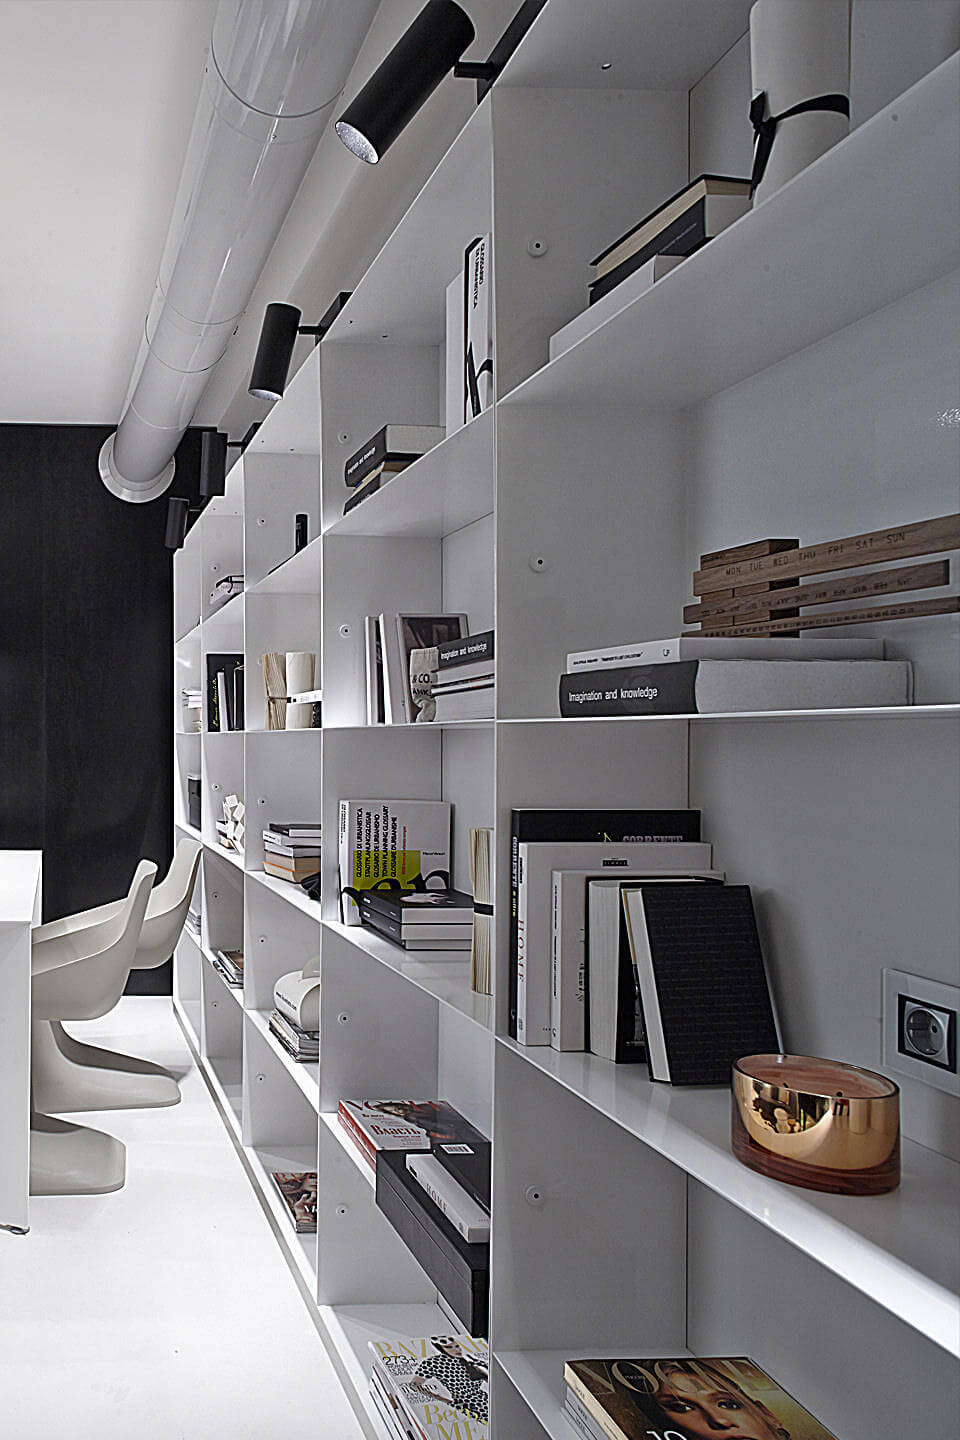 White rectangle shelves on the wall